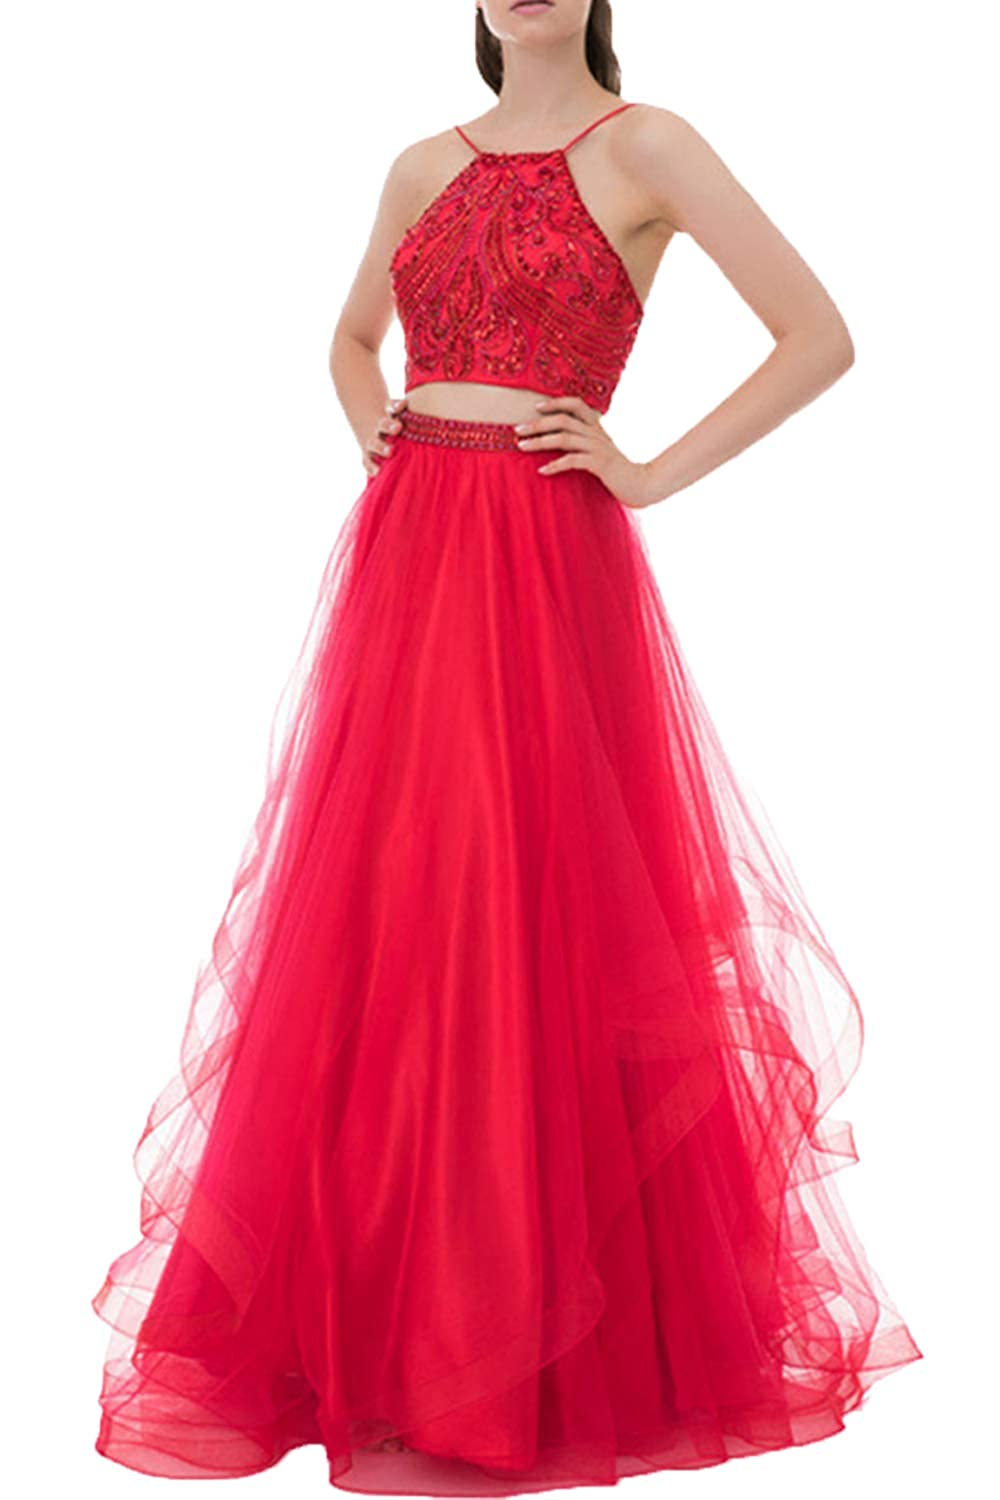 cb0bbdde3b54 Huifany Women's Two Piece Prom Dresses Long Beaded Tulle Formal Evening  Ball Gowns at Amazon Women's Clothing store: